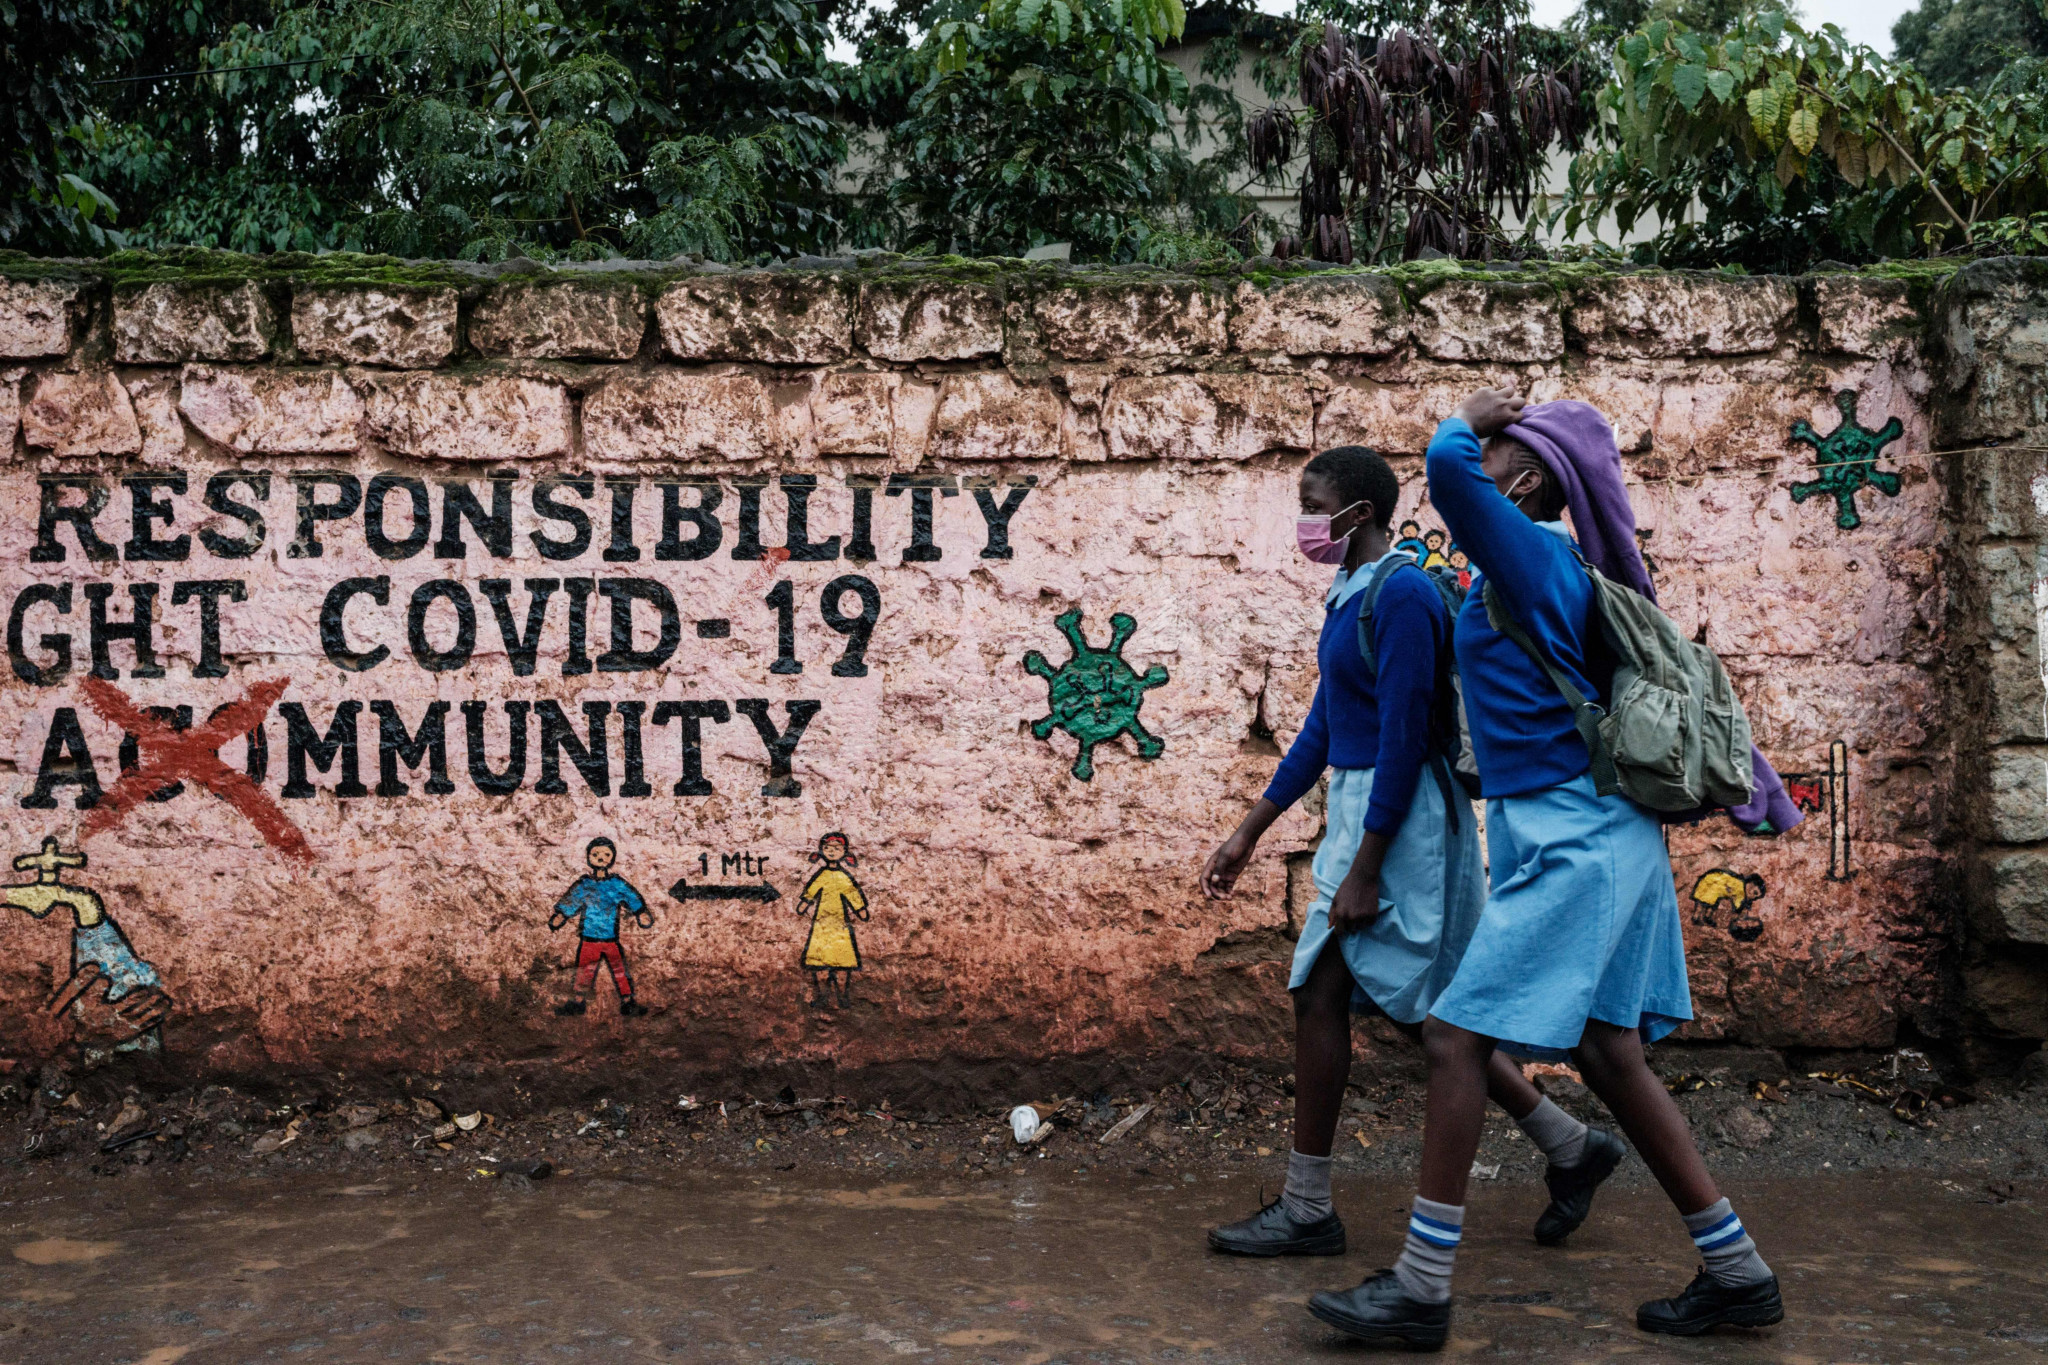 Kenya has had fewer than 3,000 coronavirus deaths, but many deny official figures © Getty Images